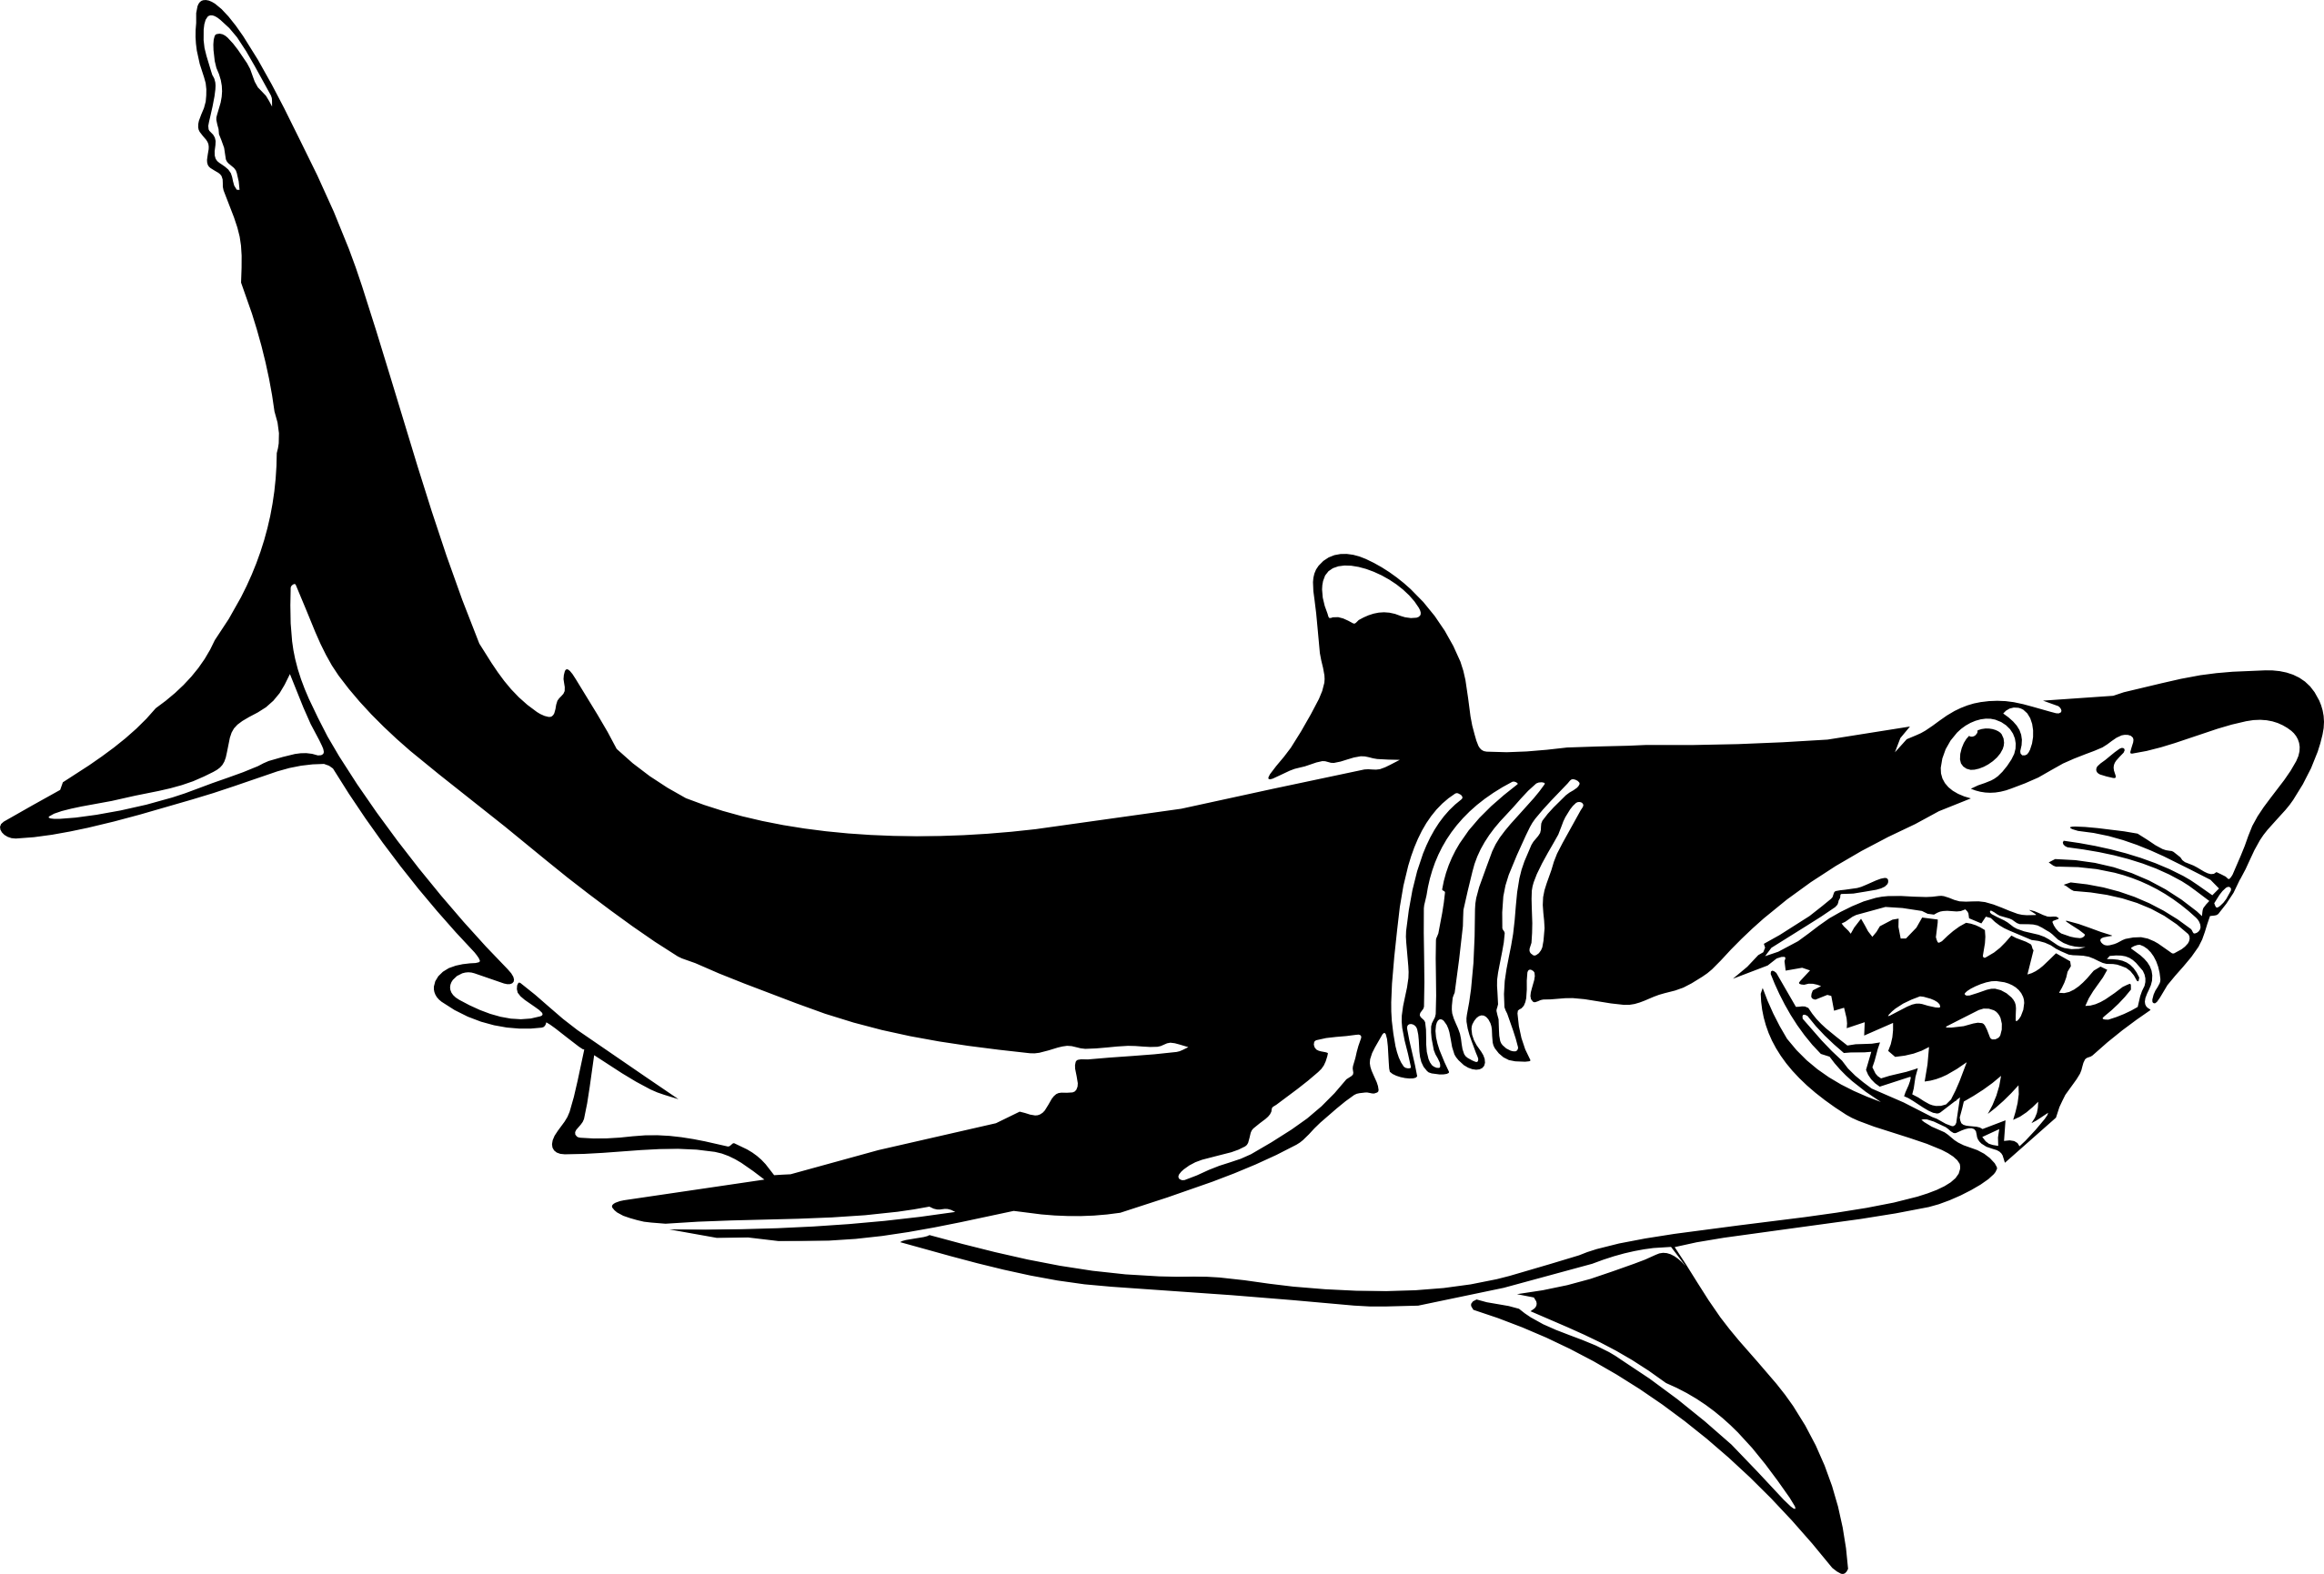 Clipart shark blacktip shark. Great white clip art